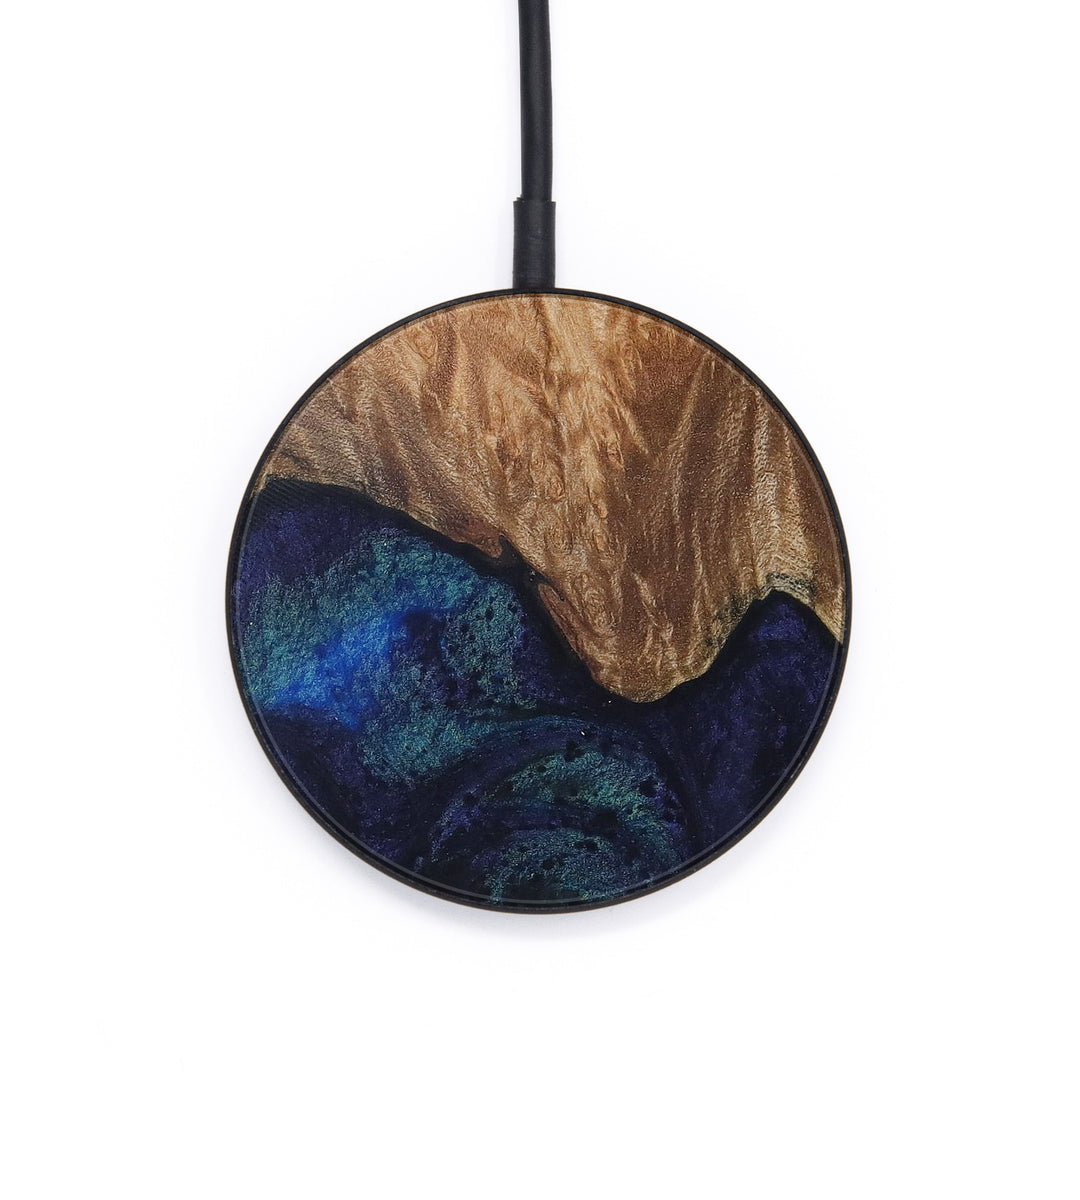 Circle Wood+Resin Wireless Charger - Gilbertina (Dark Blue, 404707)